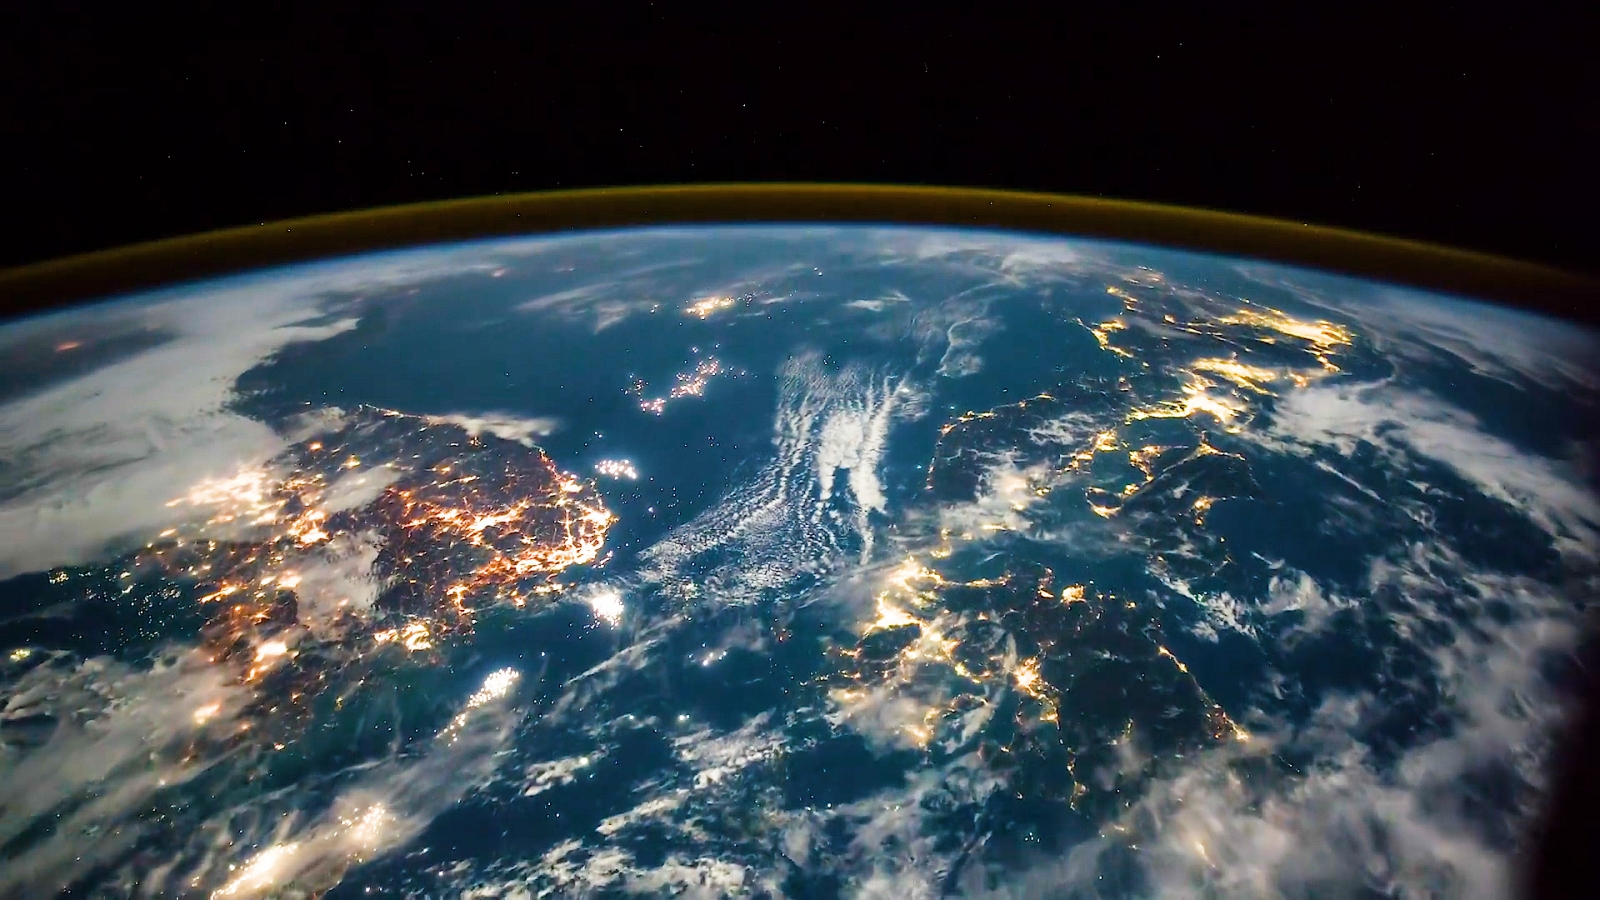 incredible-view-of-earth-from-iss-shows-lightning-and-city-lights